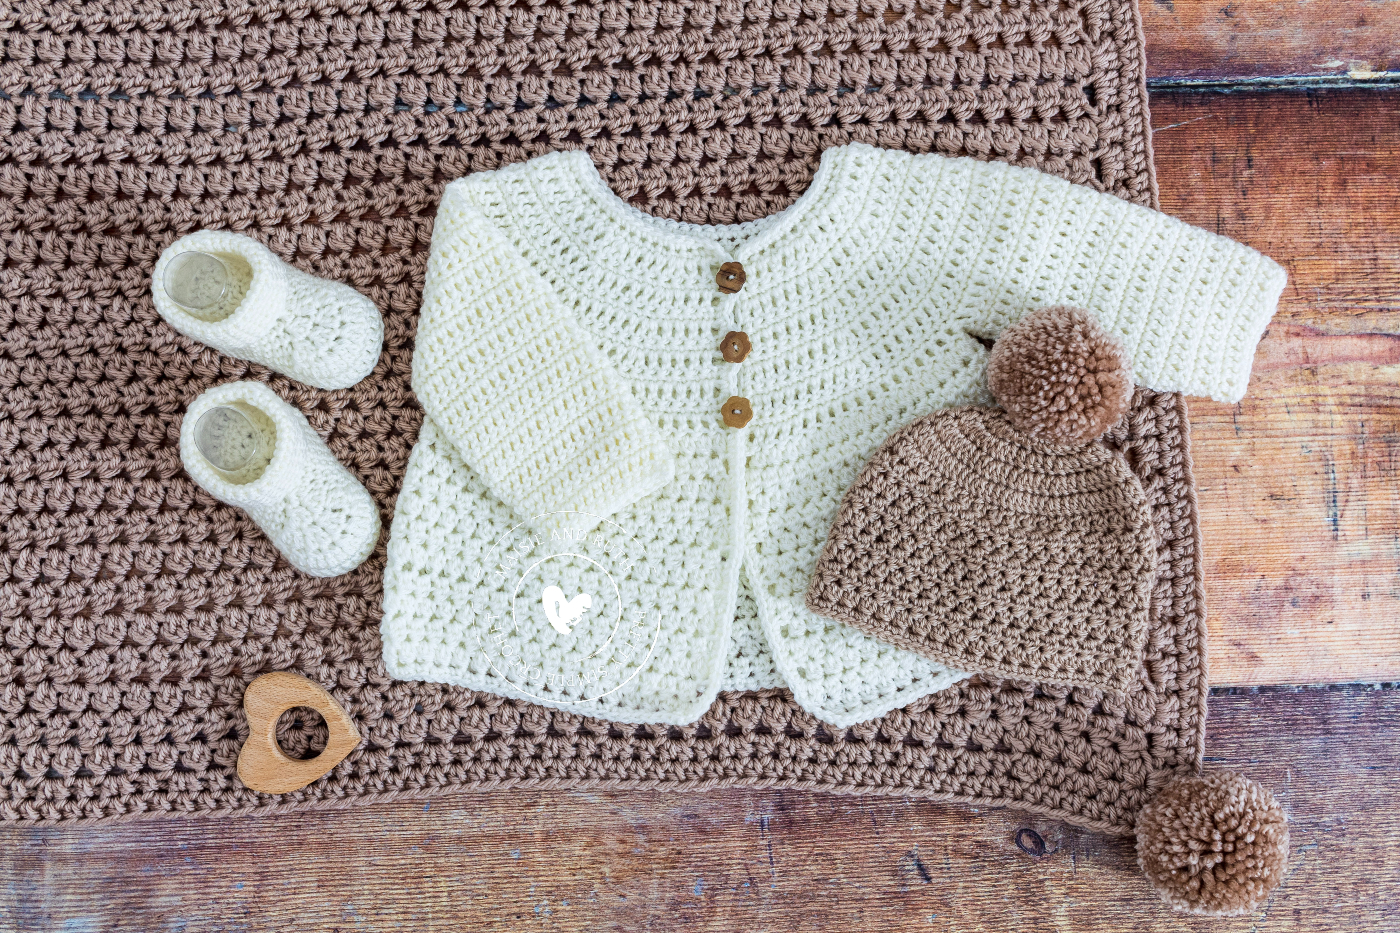 Baby Booties with matching items